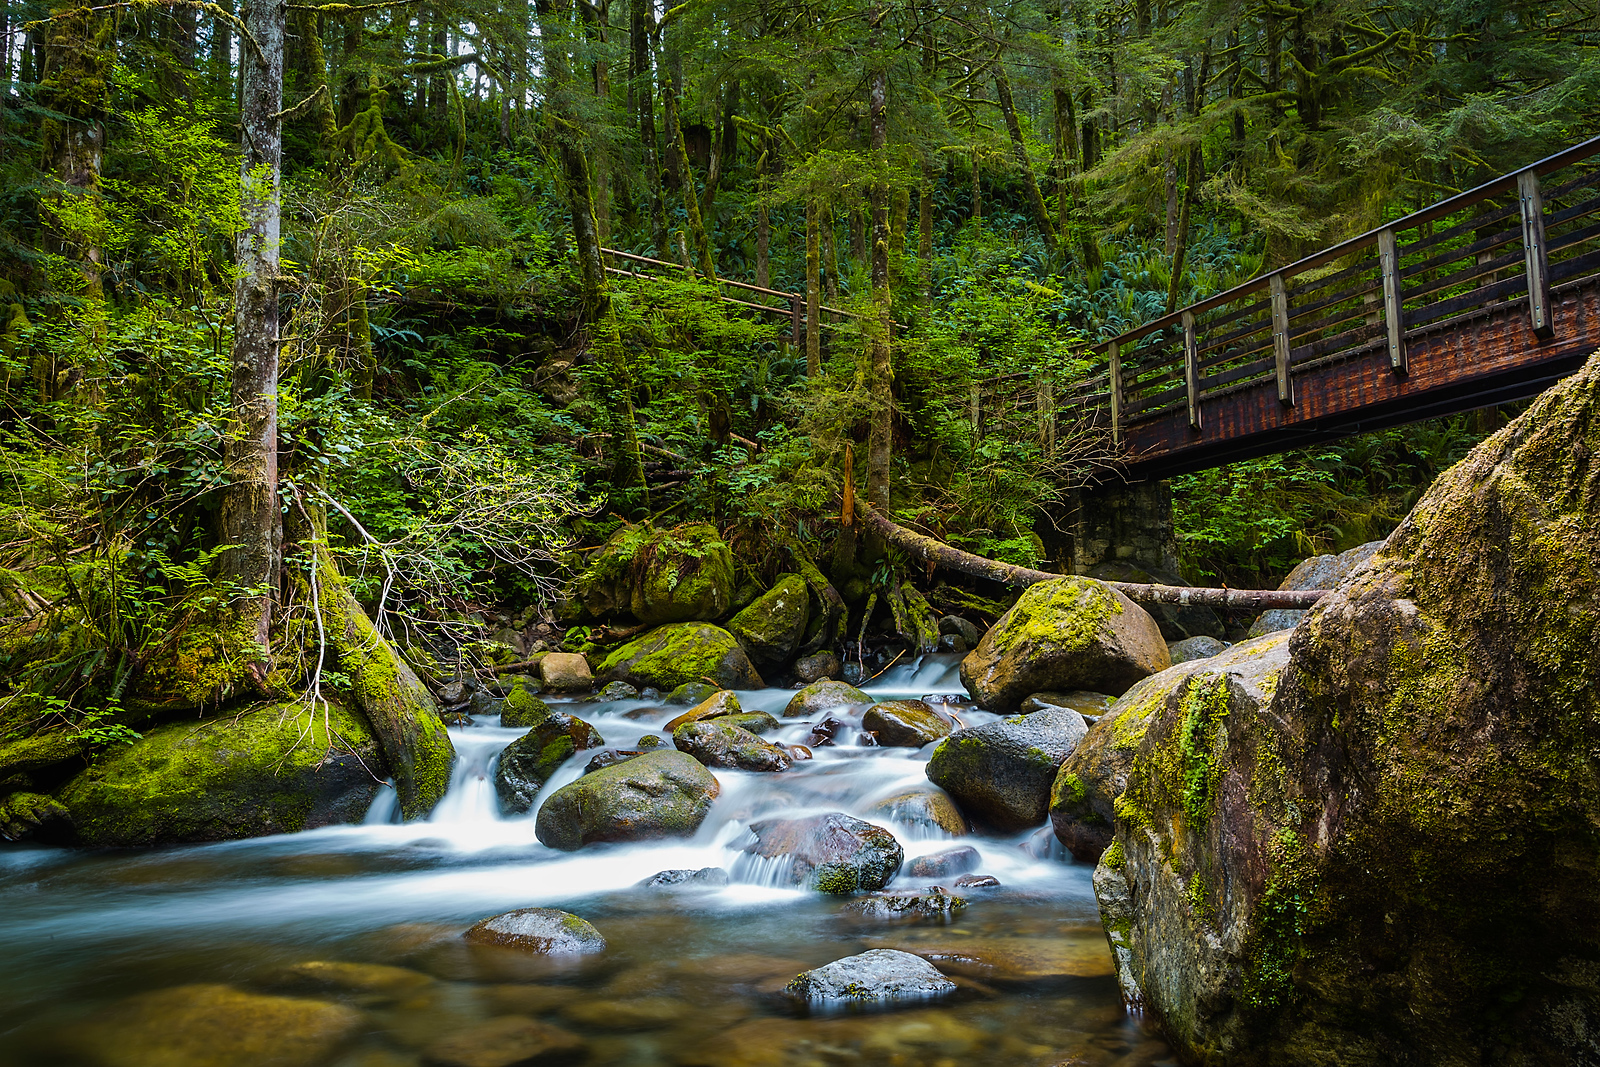 Crossing the North Fork of the Wallace River